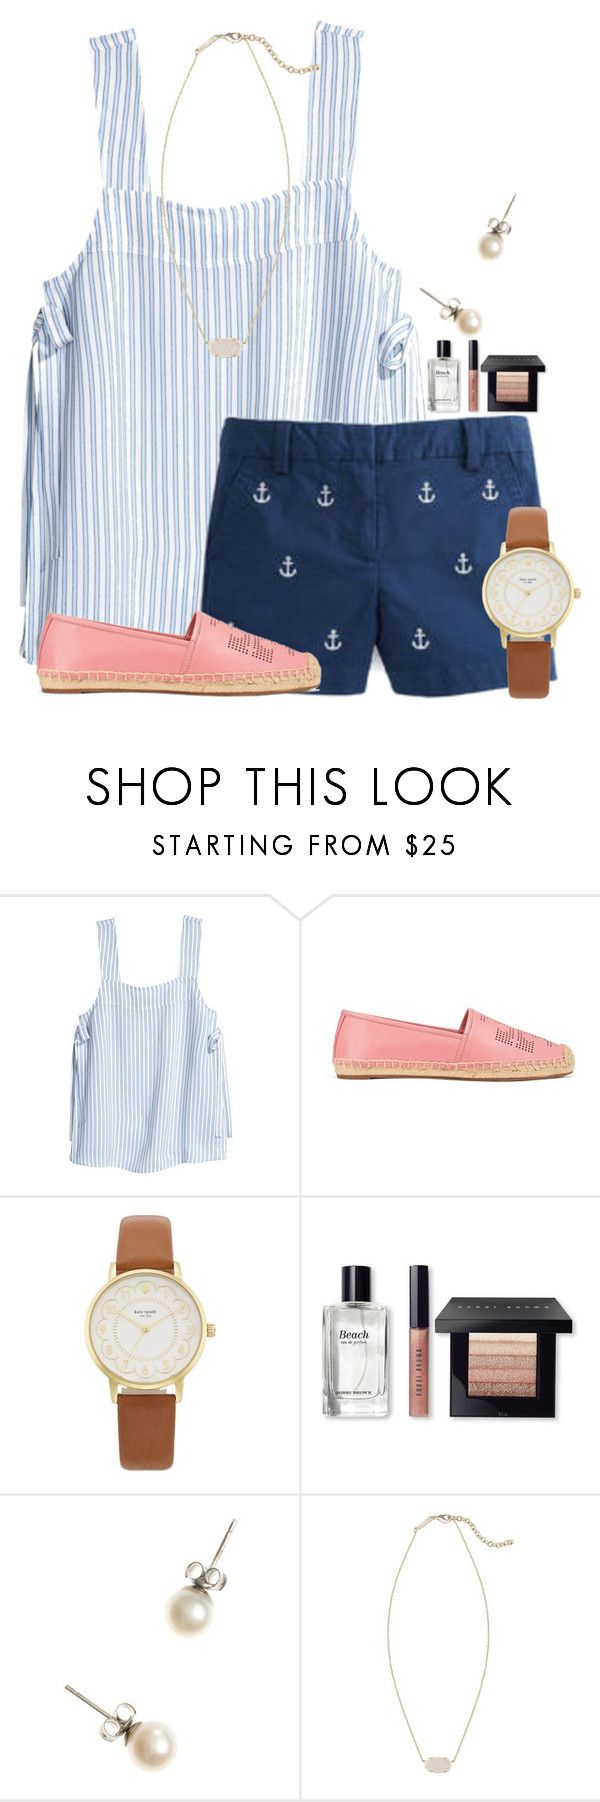 """""""Lots of people looking at our house today"""" by flroasburn ❤ liked on Polyvore featuring Vineyard Vines, Tory Burch, Kate Spade, Bobbi Brown Cosmetics, J.Crew and Kendra Scott"""